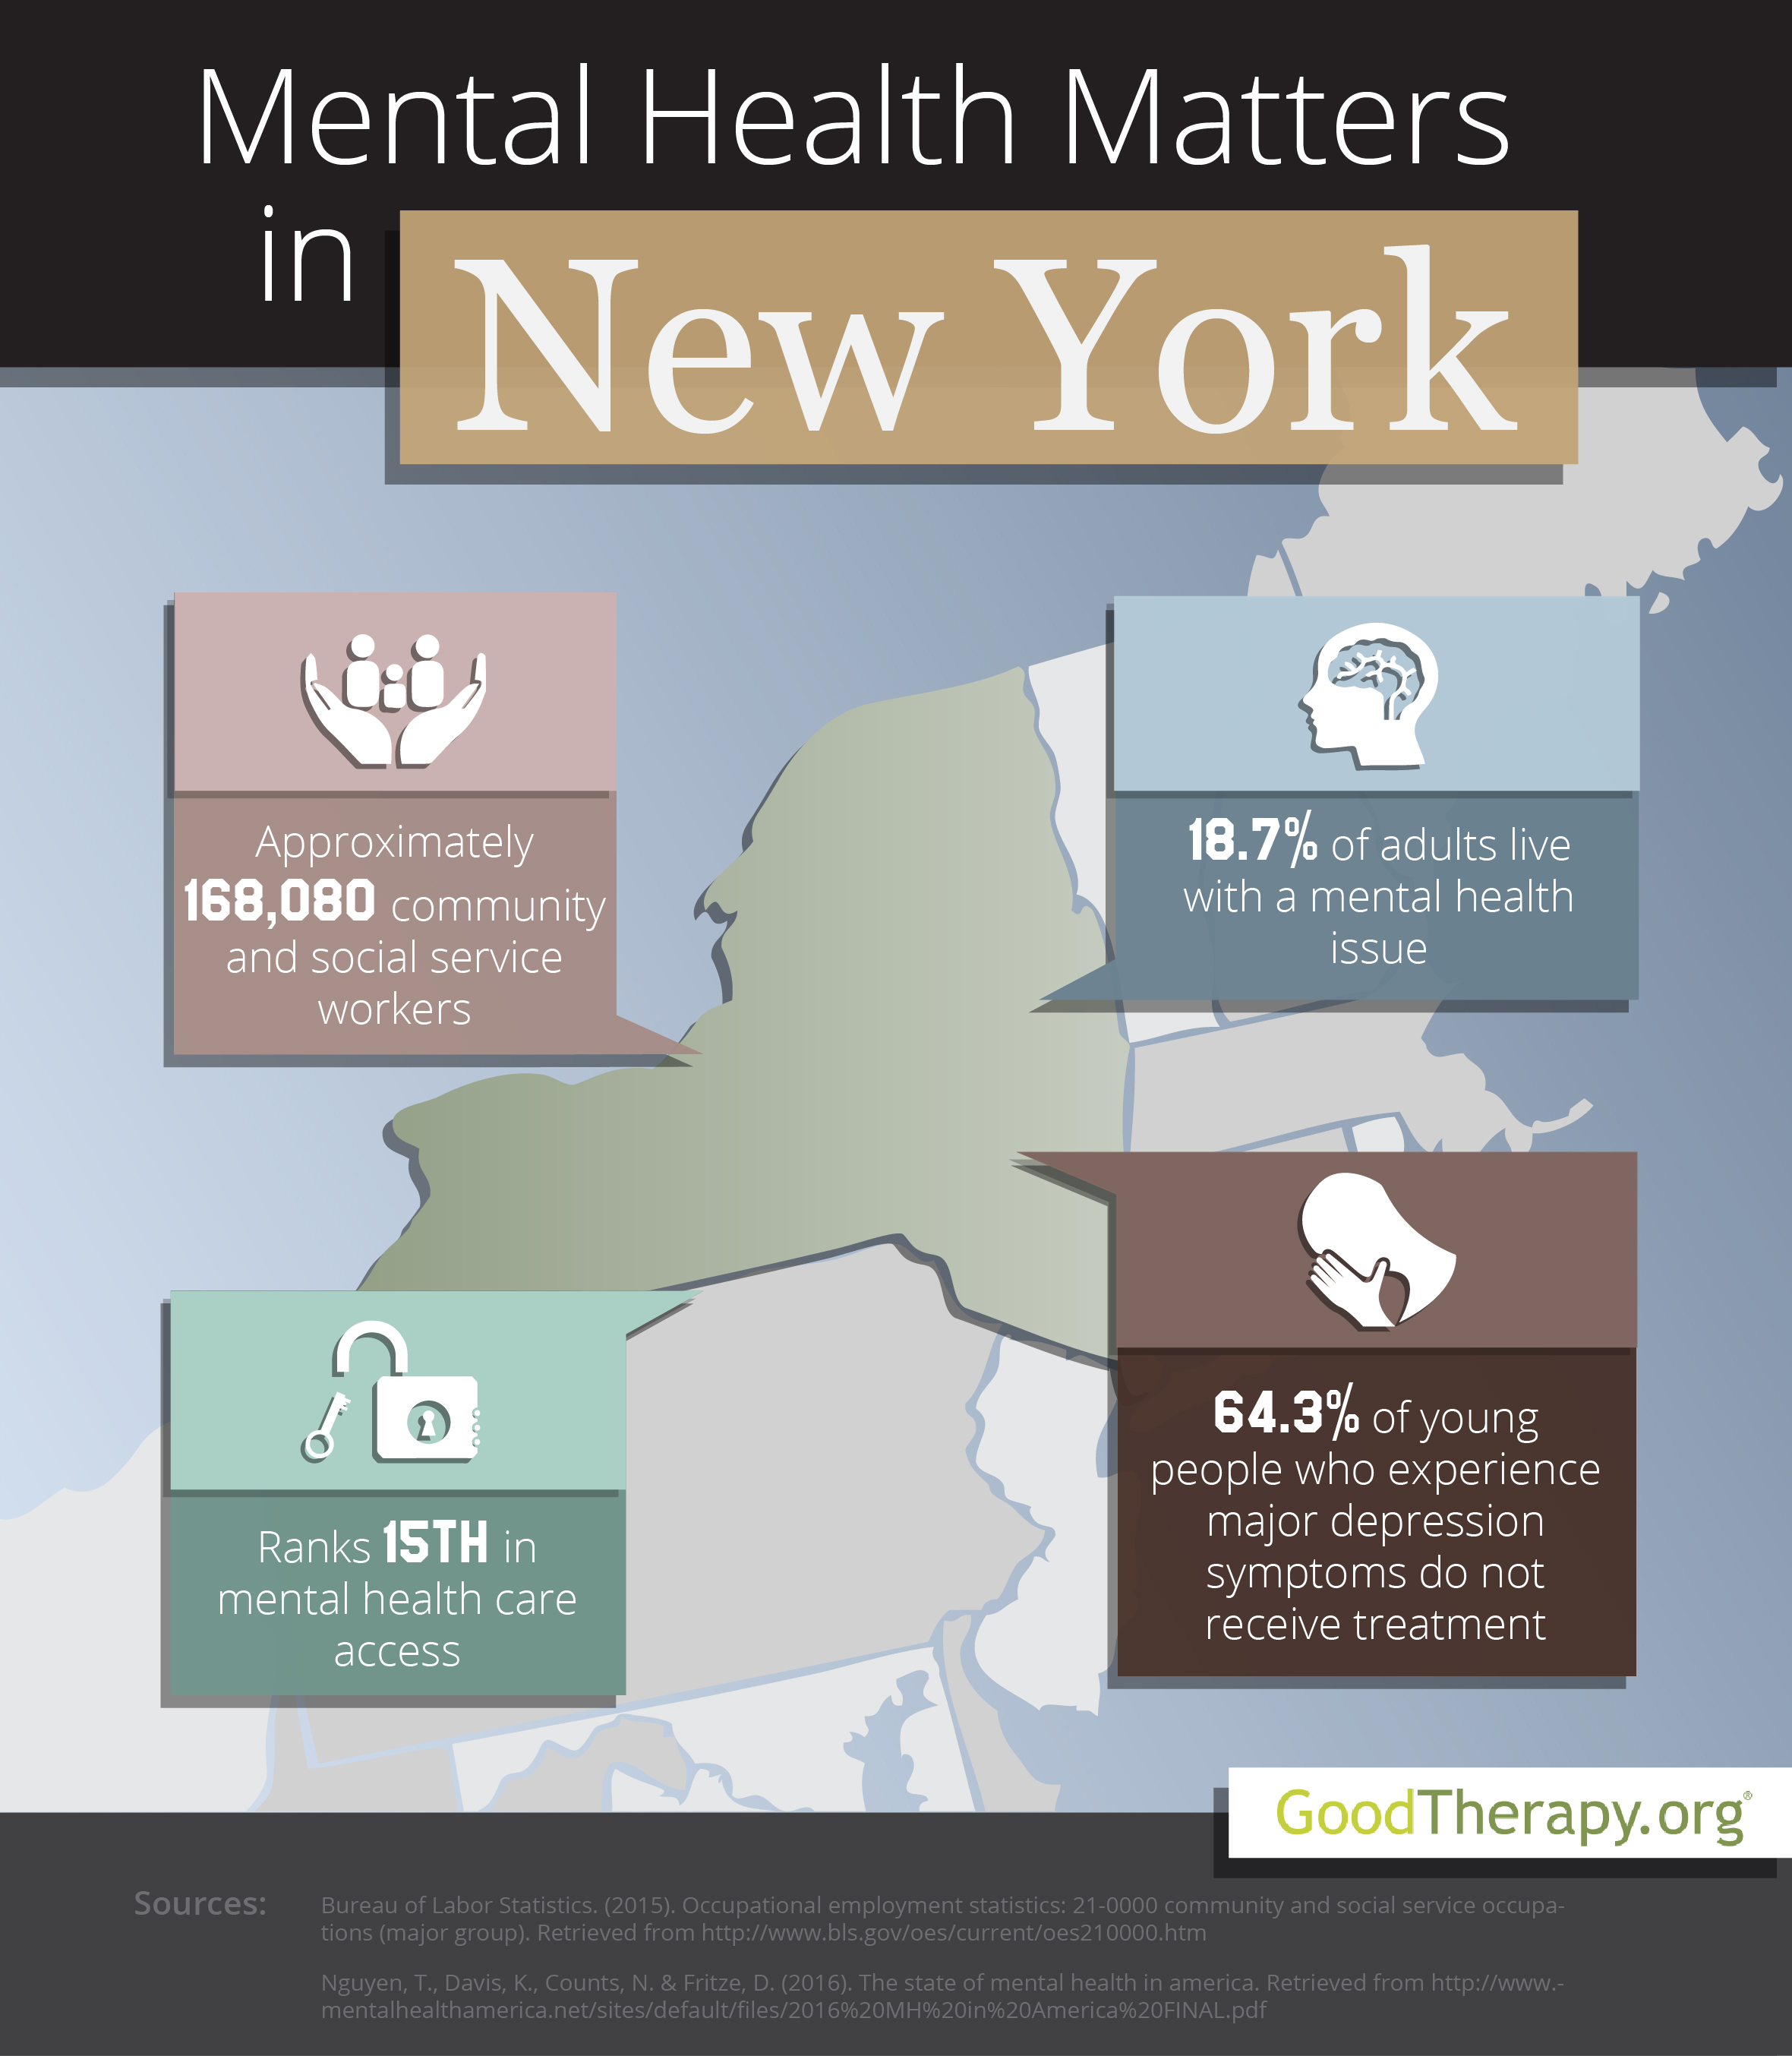 New York Mental Health Statistics